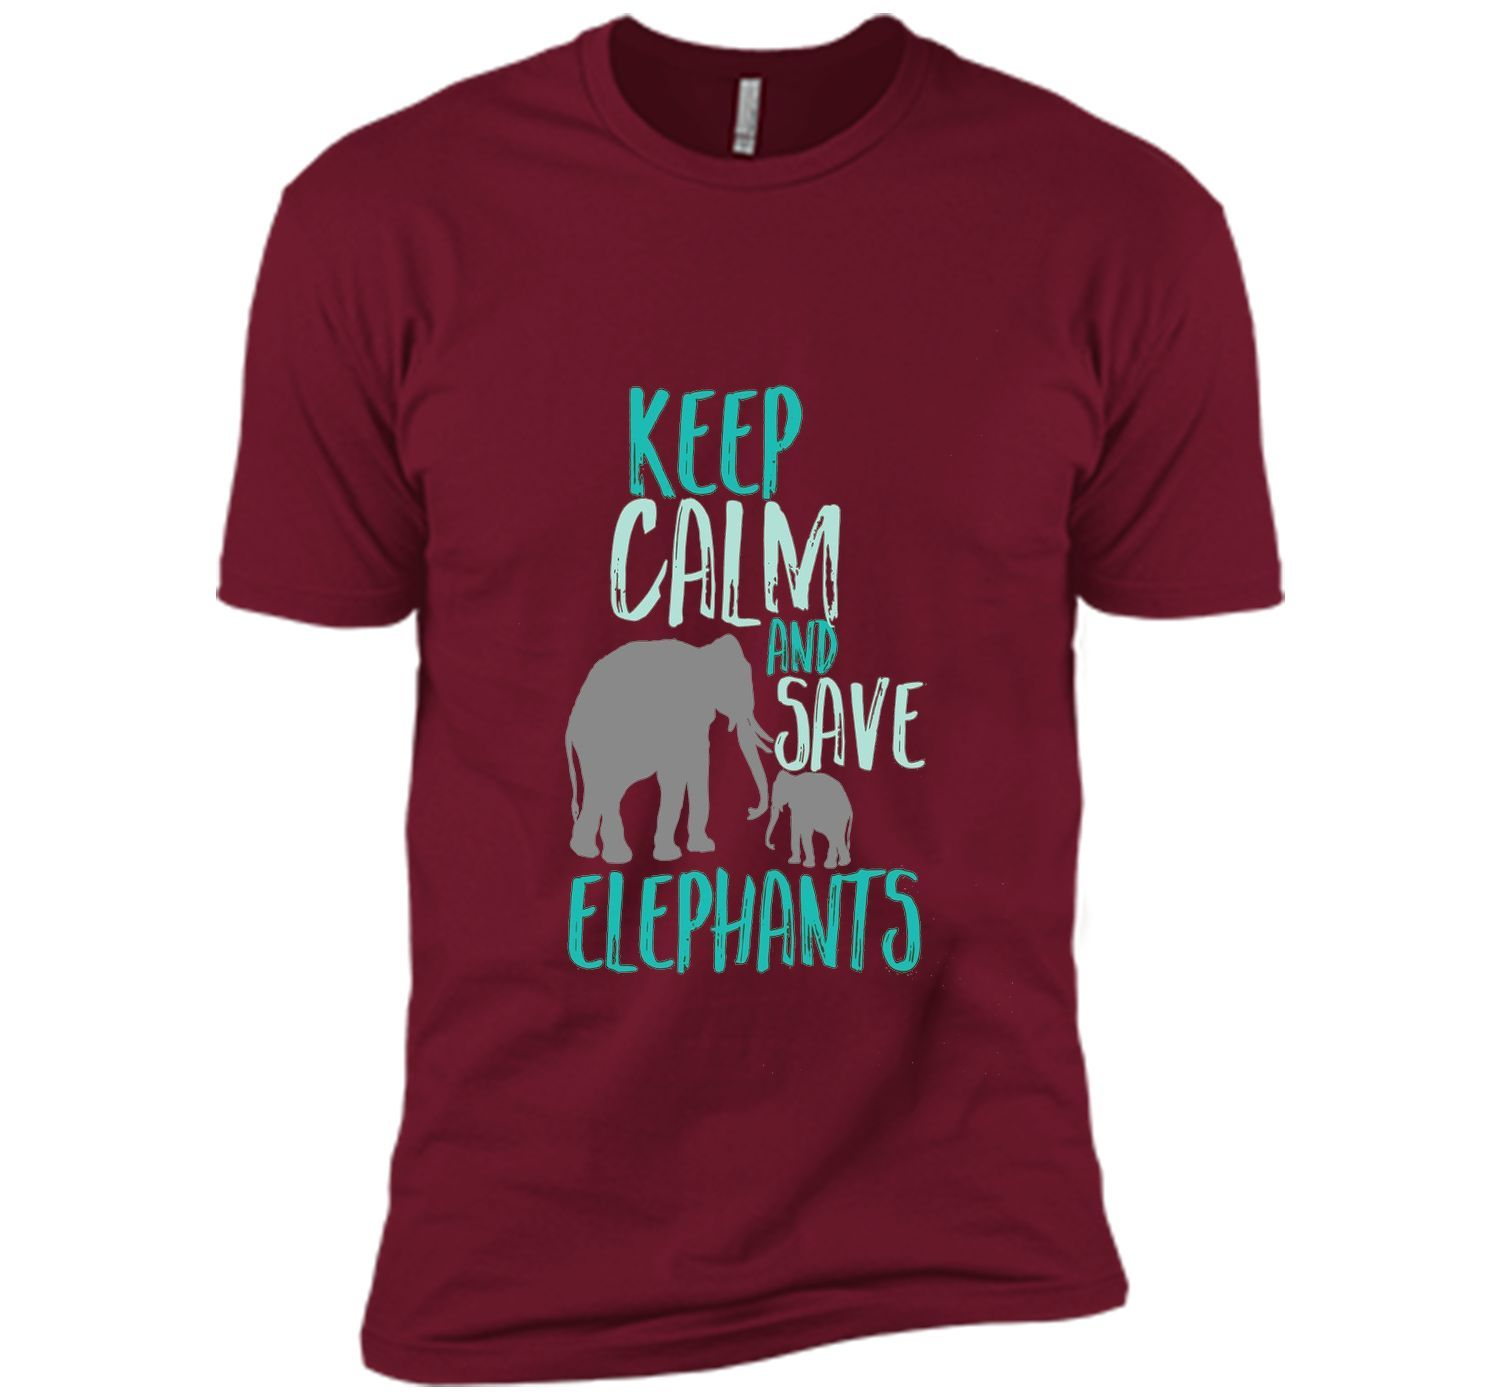 ccac5e4e4ff02f Keep Calm Save Elephants T-shirt Wildlife Animal Activist